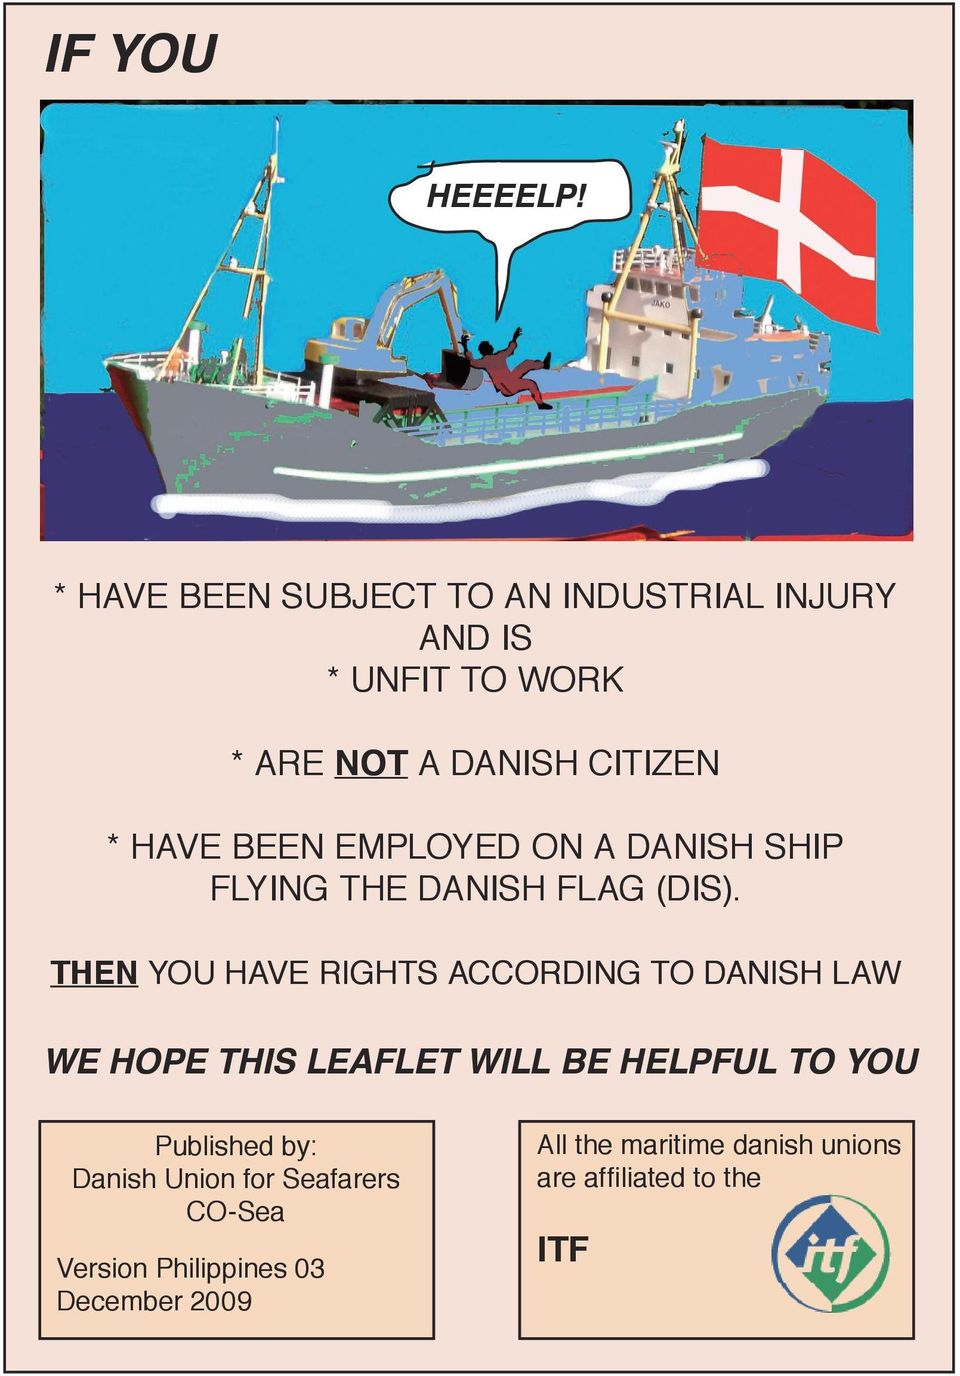 BEEN EMPLOYED ON A DANISH SHIP FLYING THE DANISH FLAG (DIS).